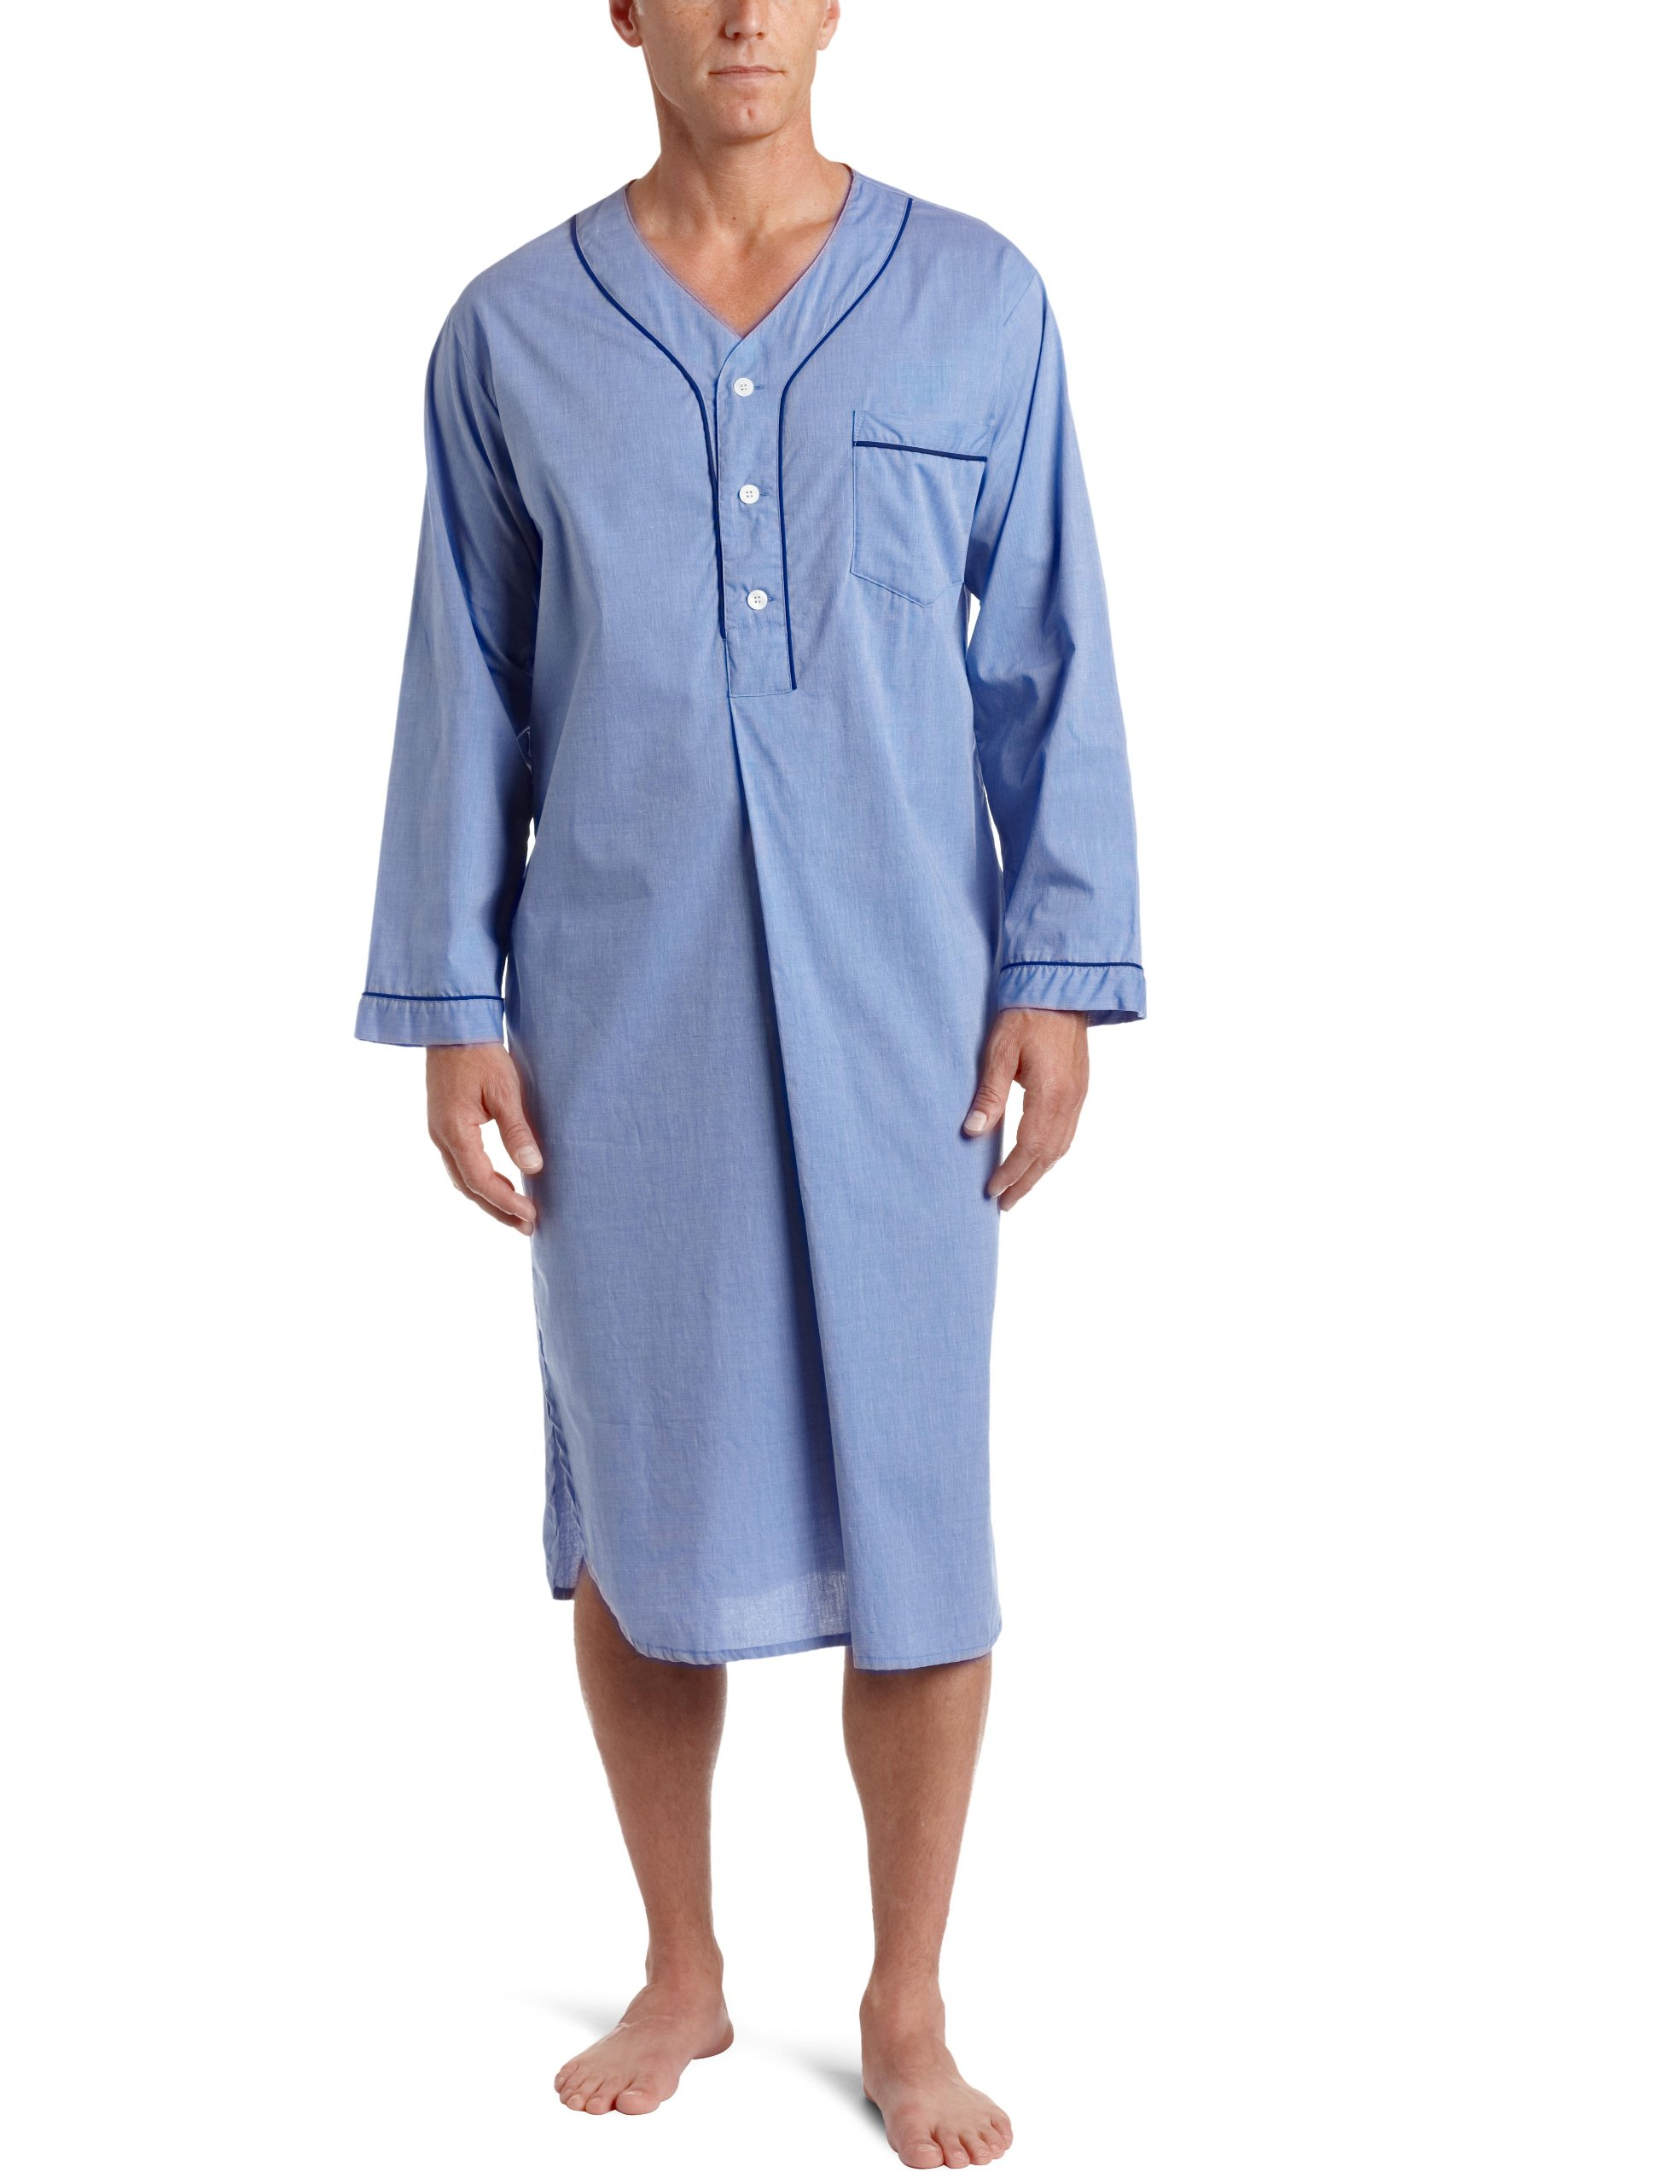 Majestic International Men's Nightshirt, Blue, Large/X-Large